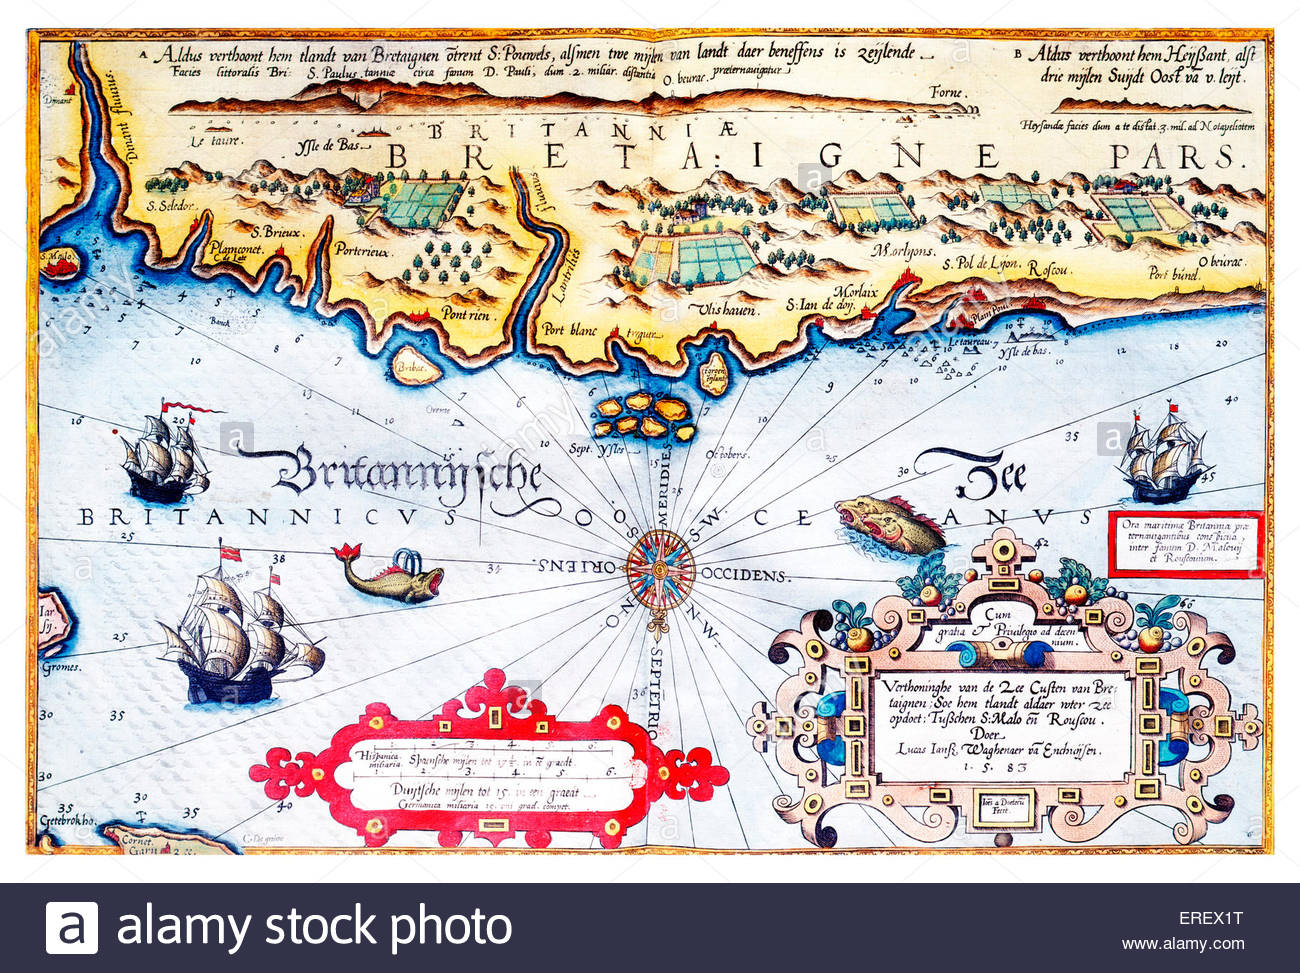 Navigation chart of Brittany coast by Lucas Jaszoon Wagenaer, 1583. Dutch chief officer and cartographer, 1533/34 - Stock Image